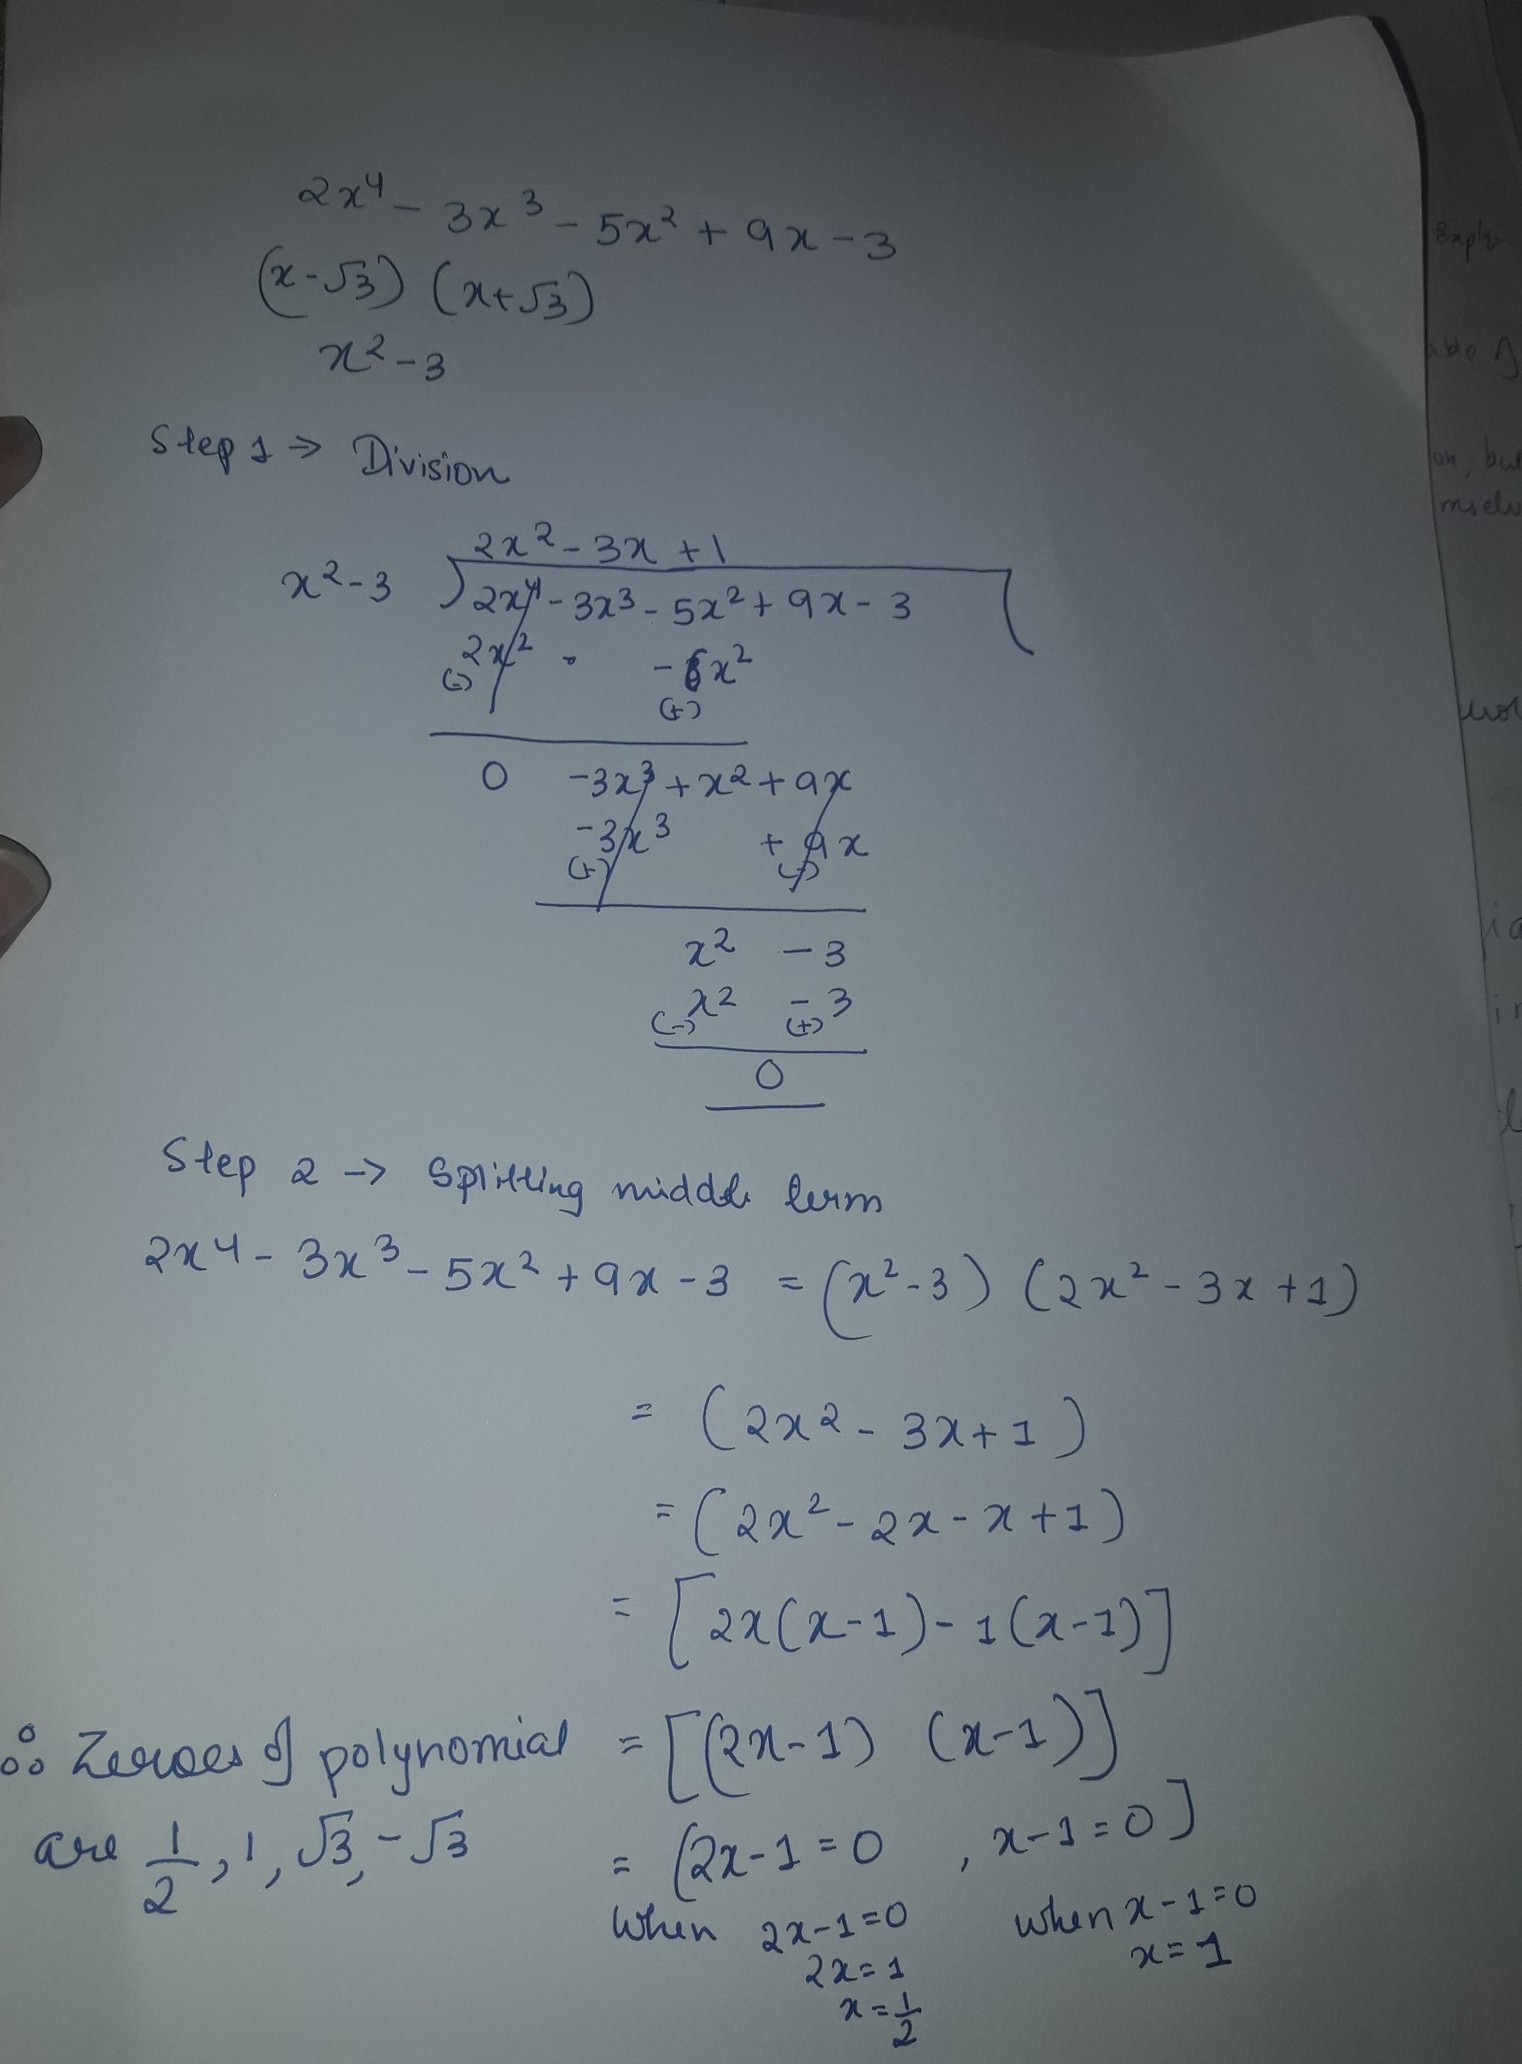 Find Zeros Of Polynomial 2x4 3x3 5x2 9x 3 If 2 Of Its